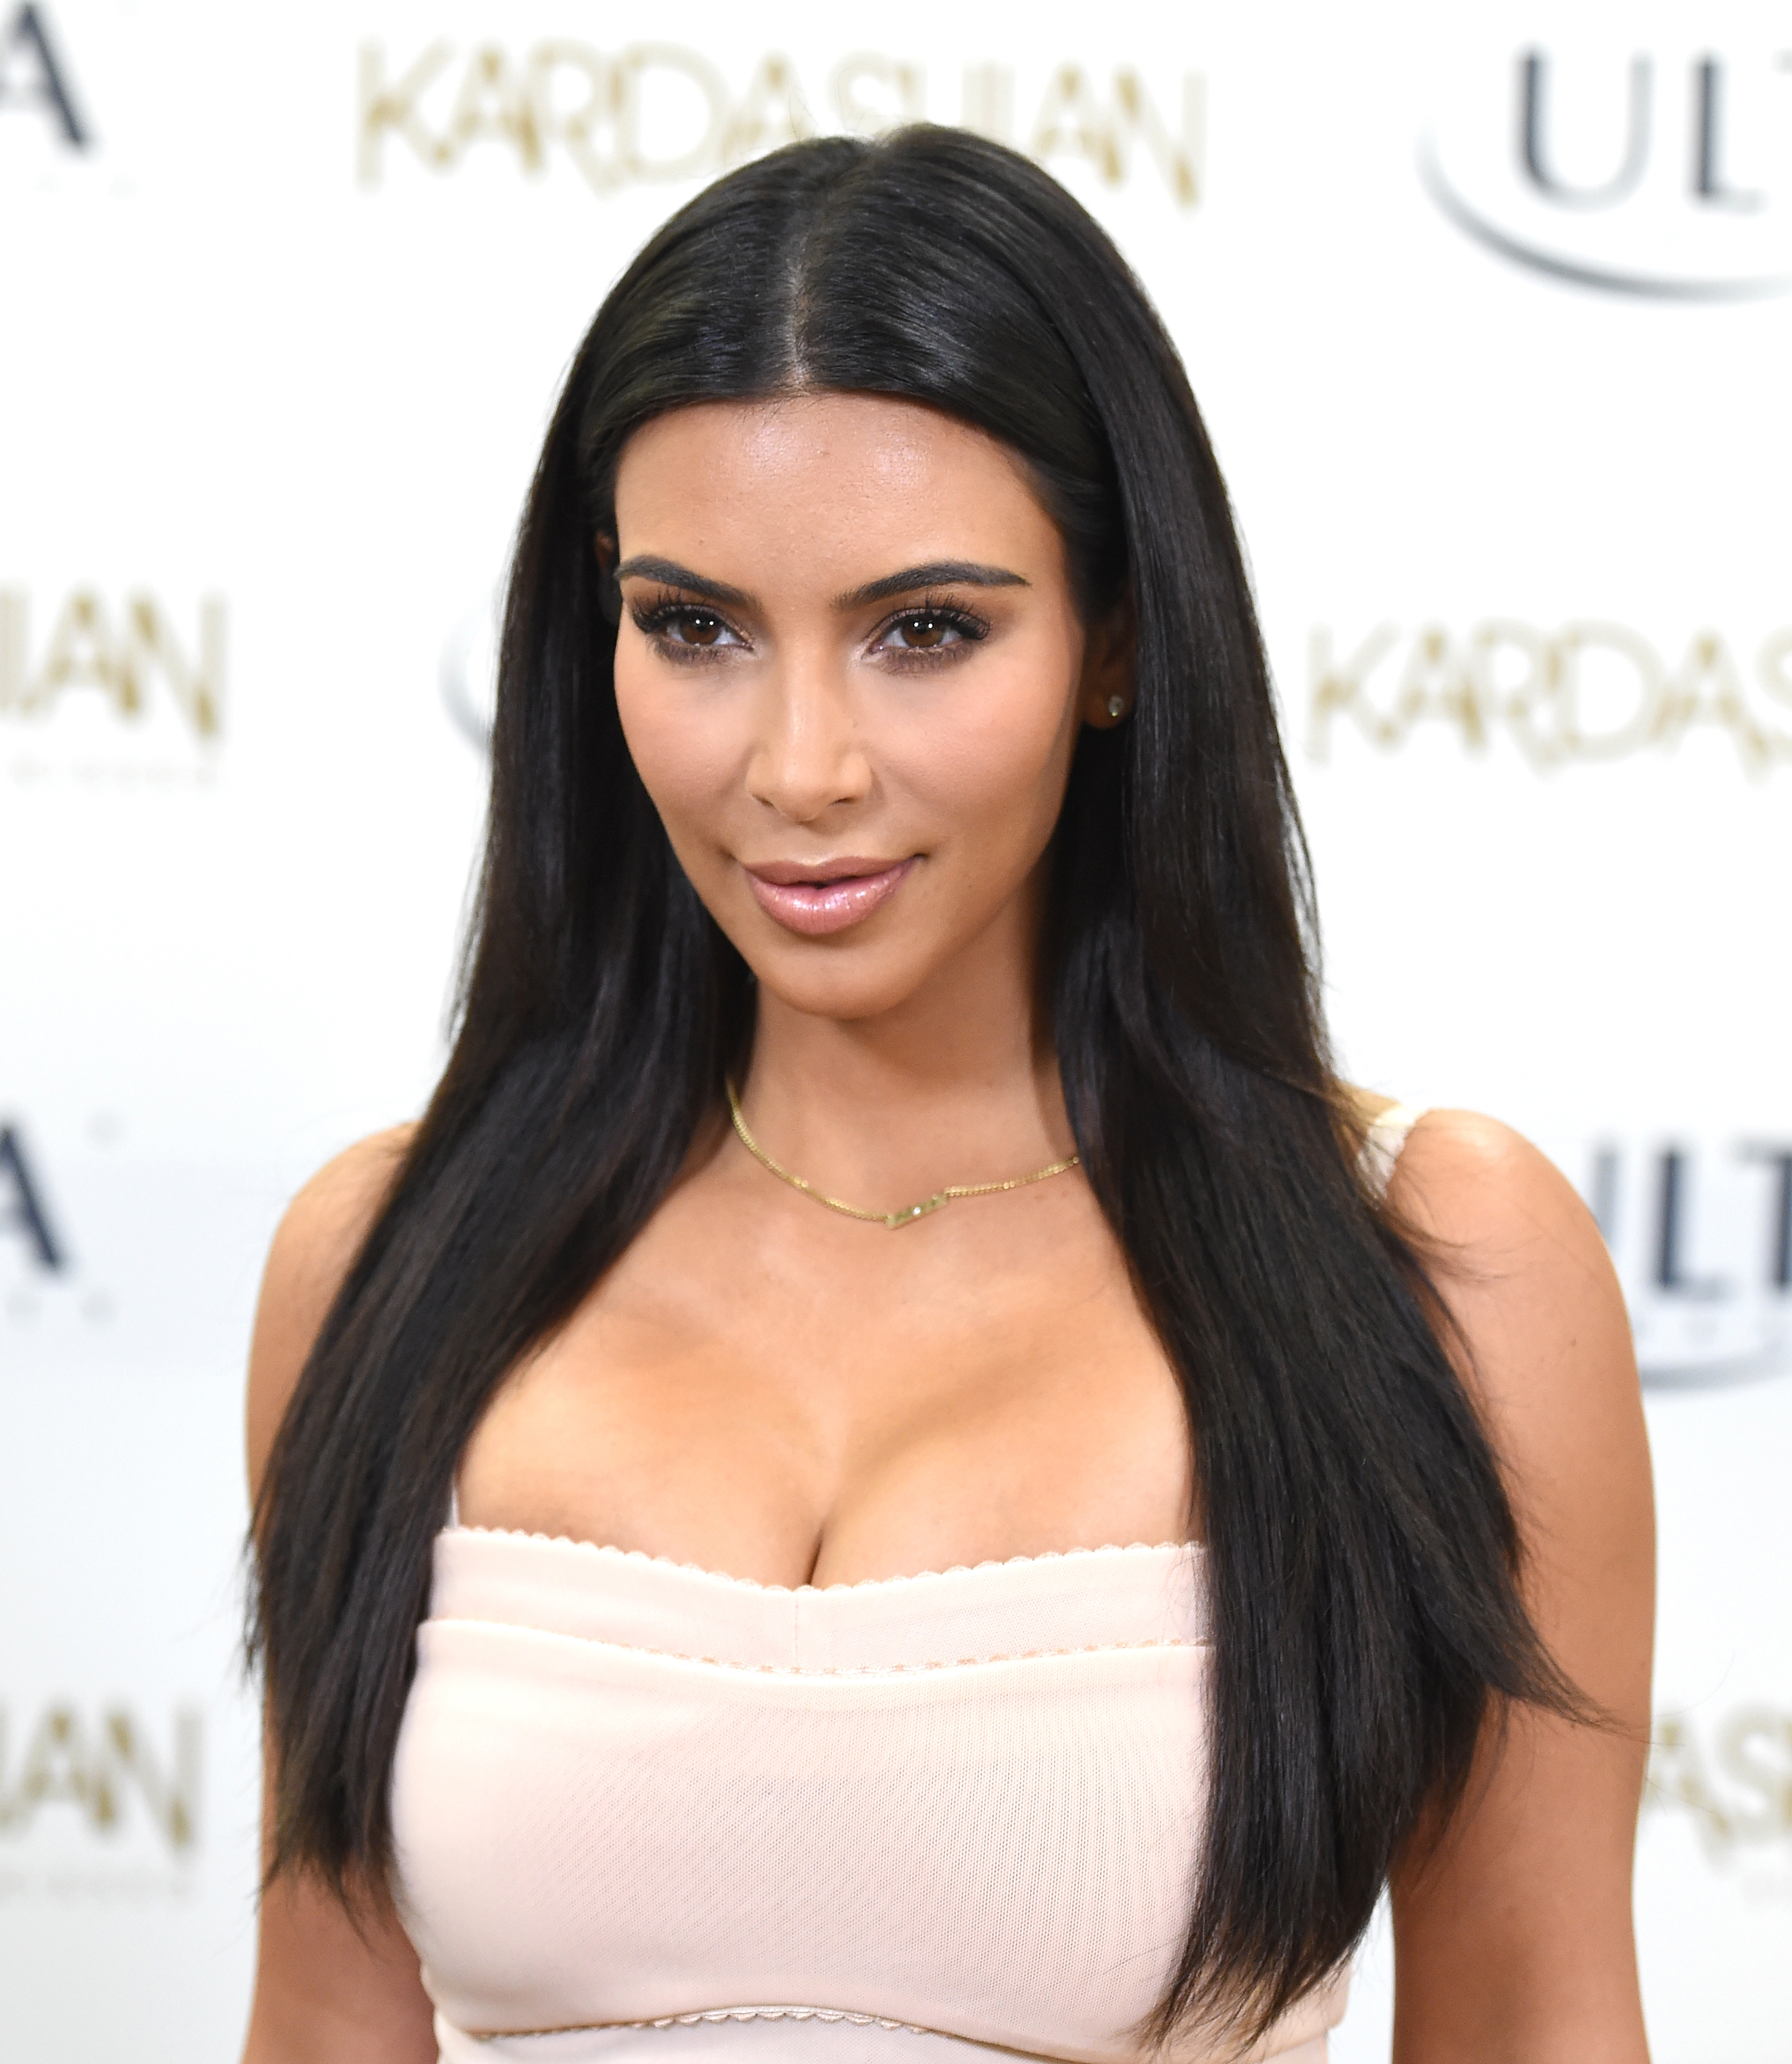 Kim Kardashian celebrates summer with the Kardashian Sun Kissed line and fans at ULTA Beauty on August 6, 2014 in Los Angeles, California.